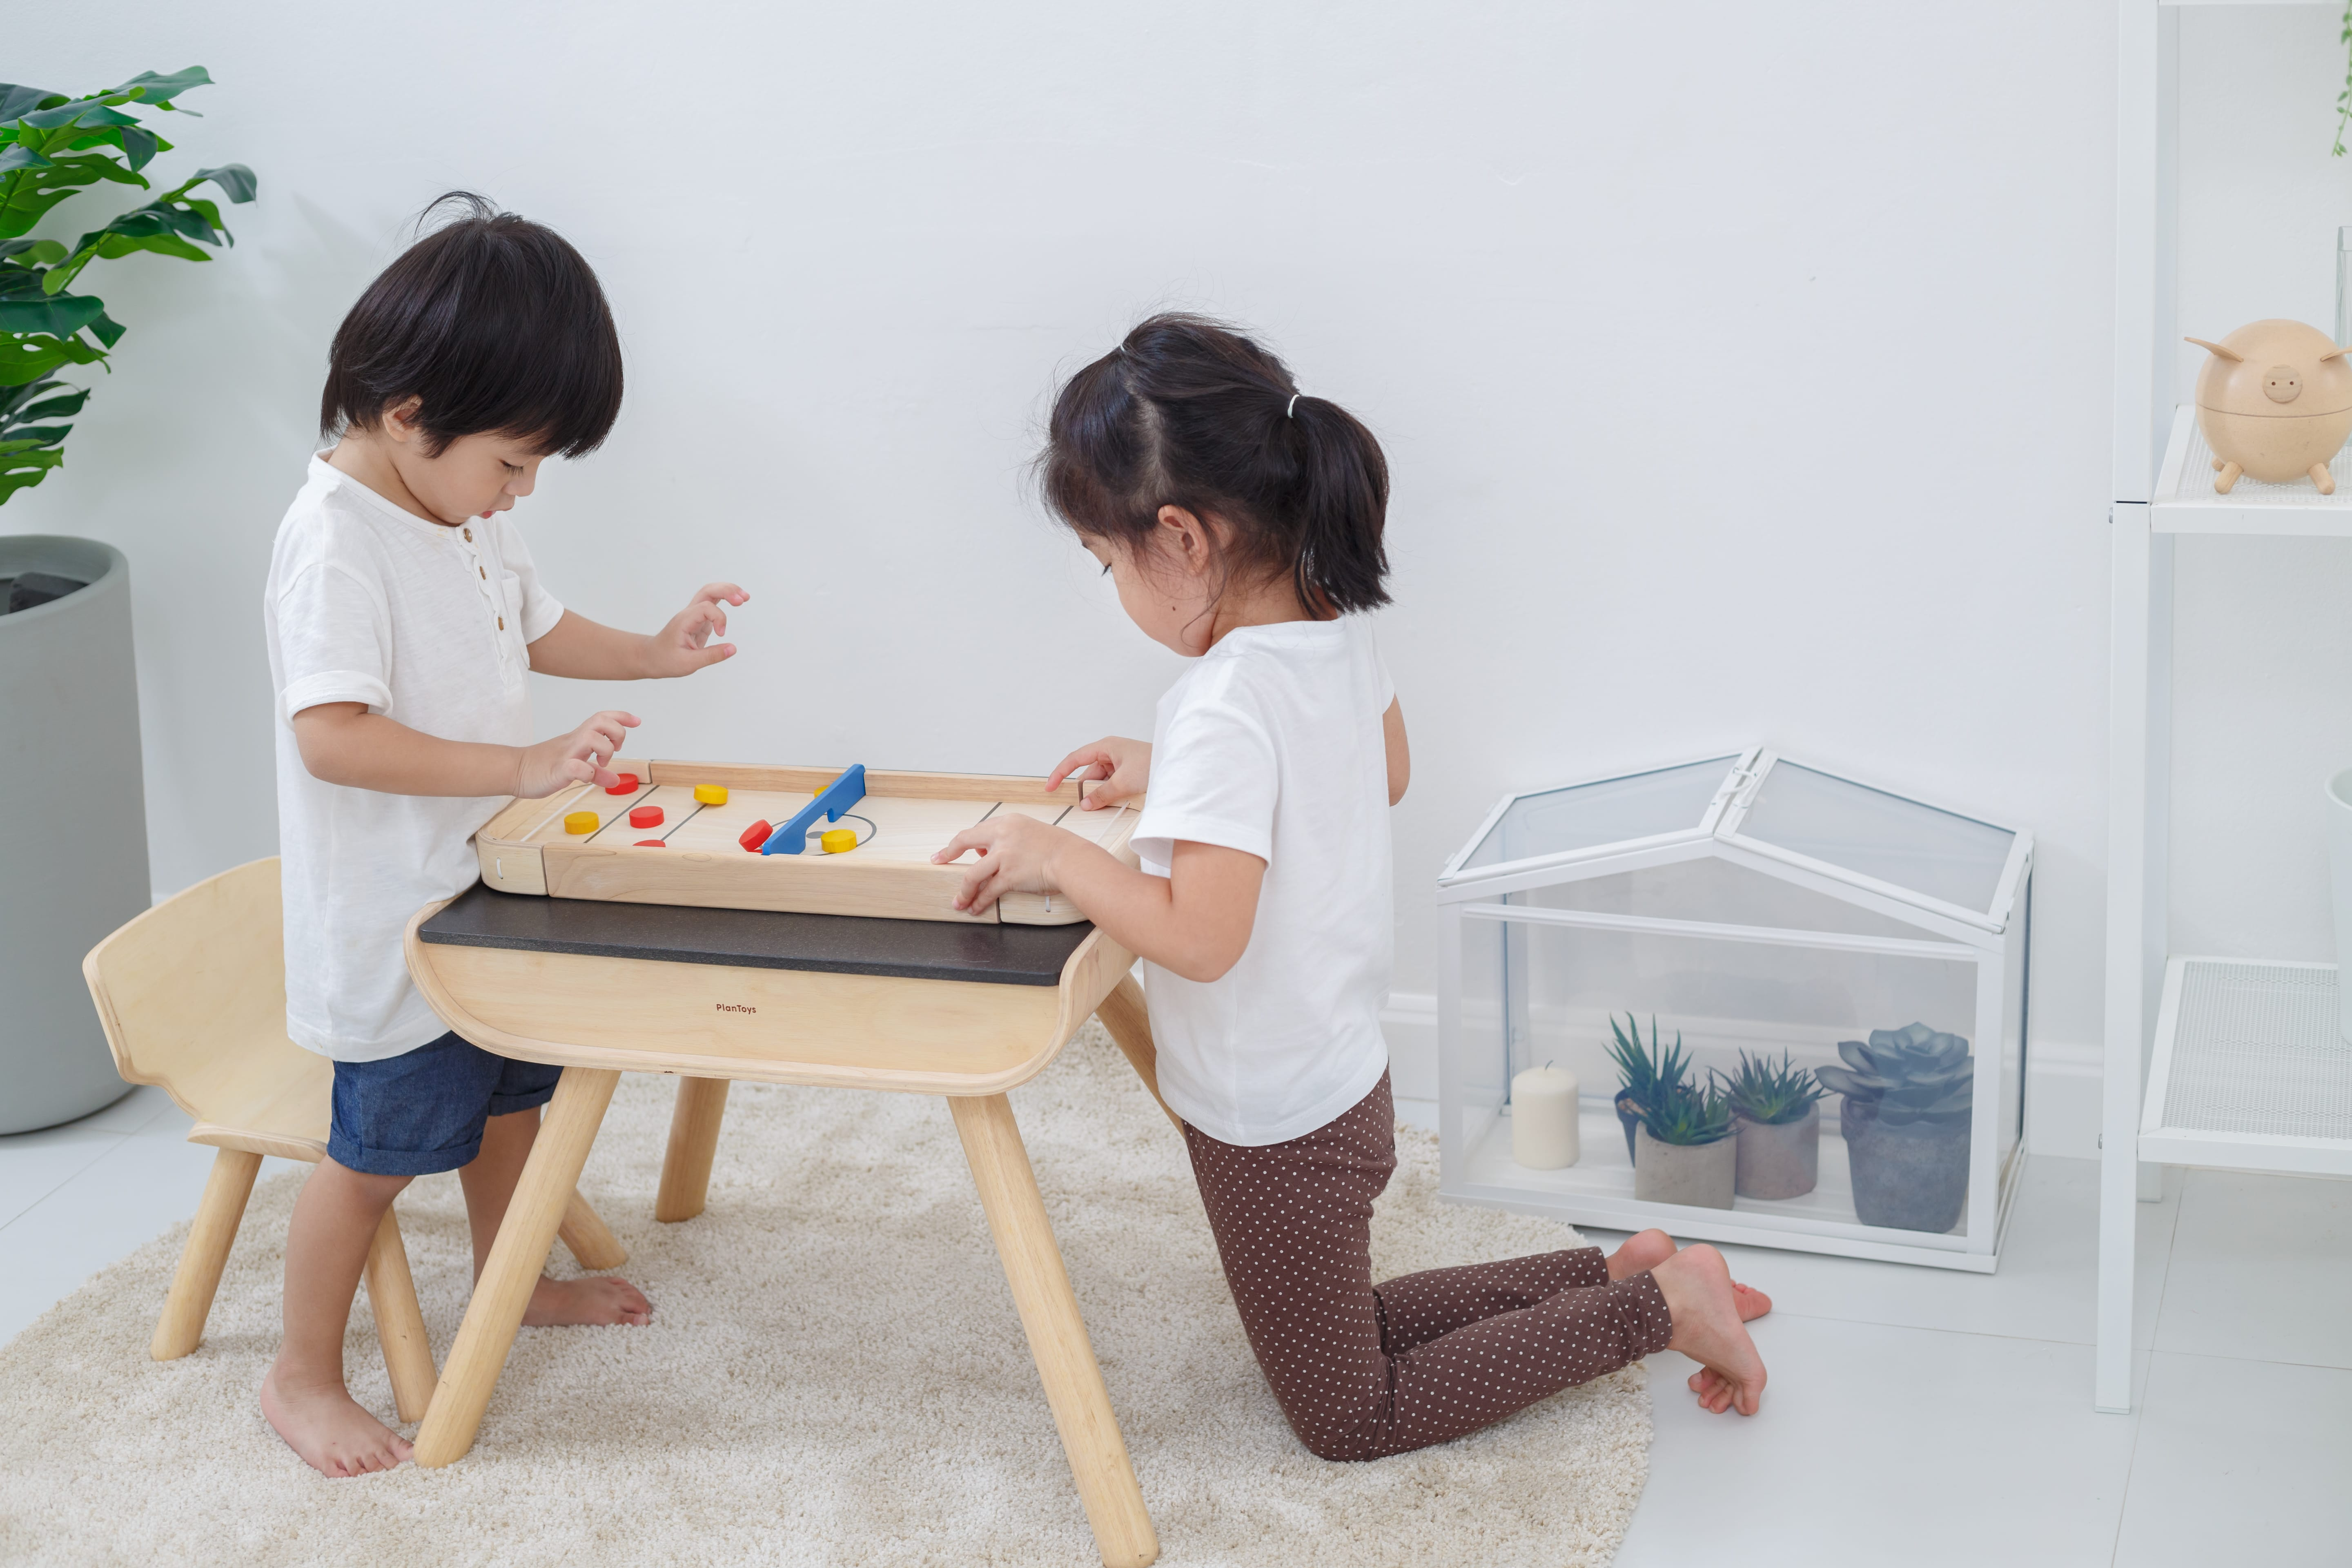 4626_PlanToys_2-IN-1_SHUFFLEBOARD-GAME_Game_and_Puzzles_Fine_Motor_Coordination_Social_Language_and_Communications_Mathematical_3yrs_Wooden_toys_Education_toys_Safety_Toys_Non-toxic_5.jpg